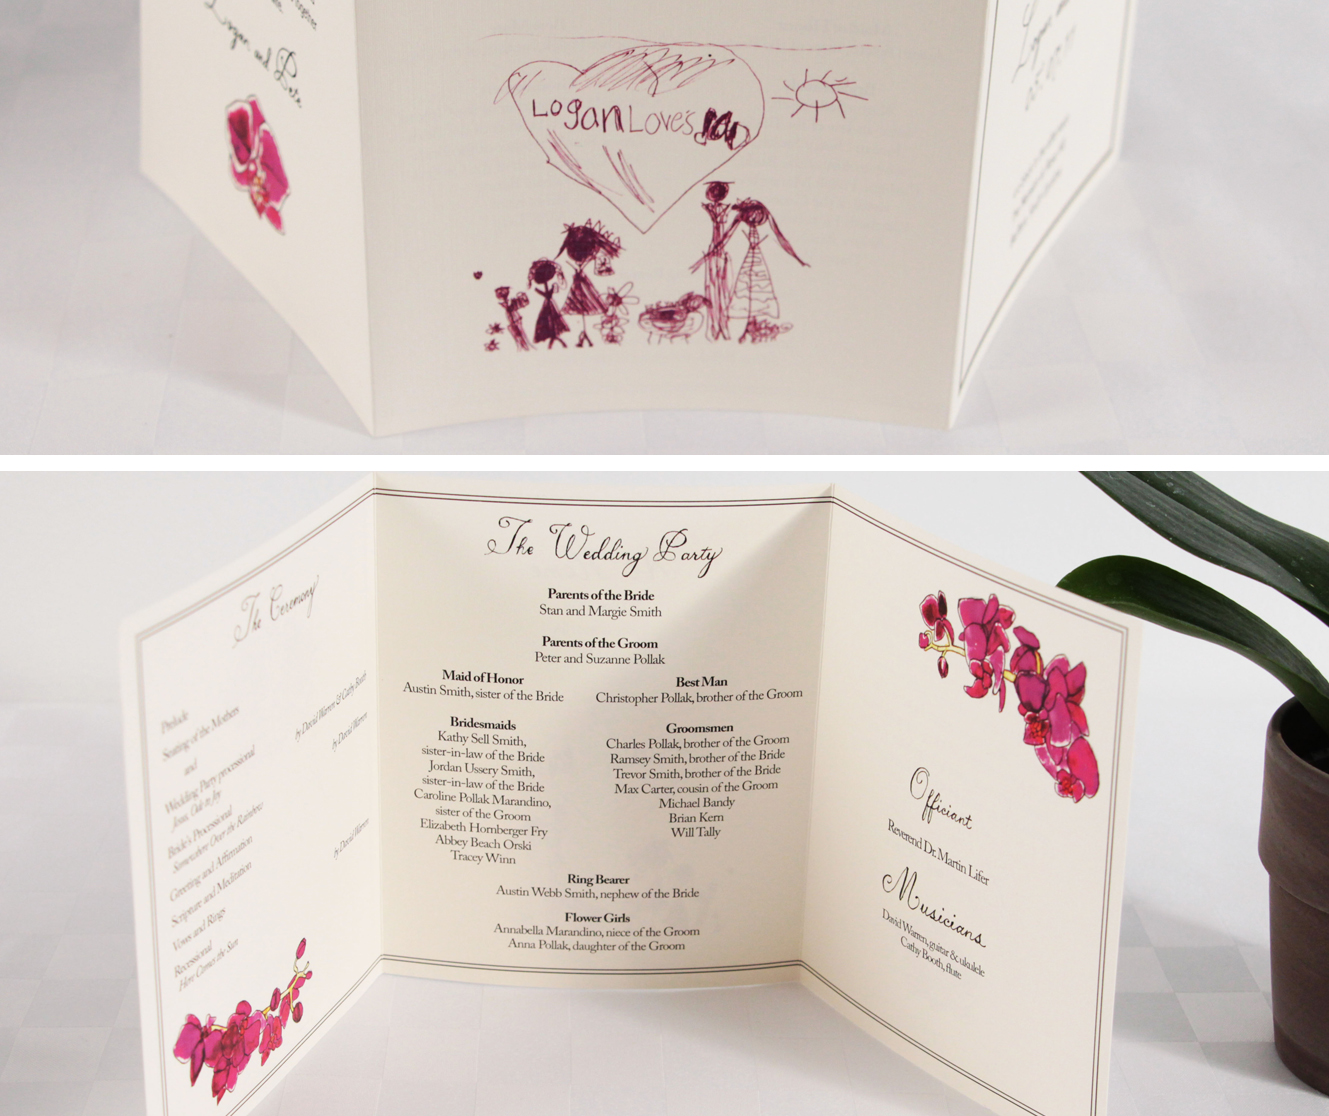 Logan and Pete's trifold orchid wedding program, inside and out.